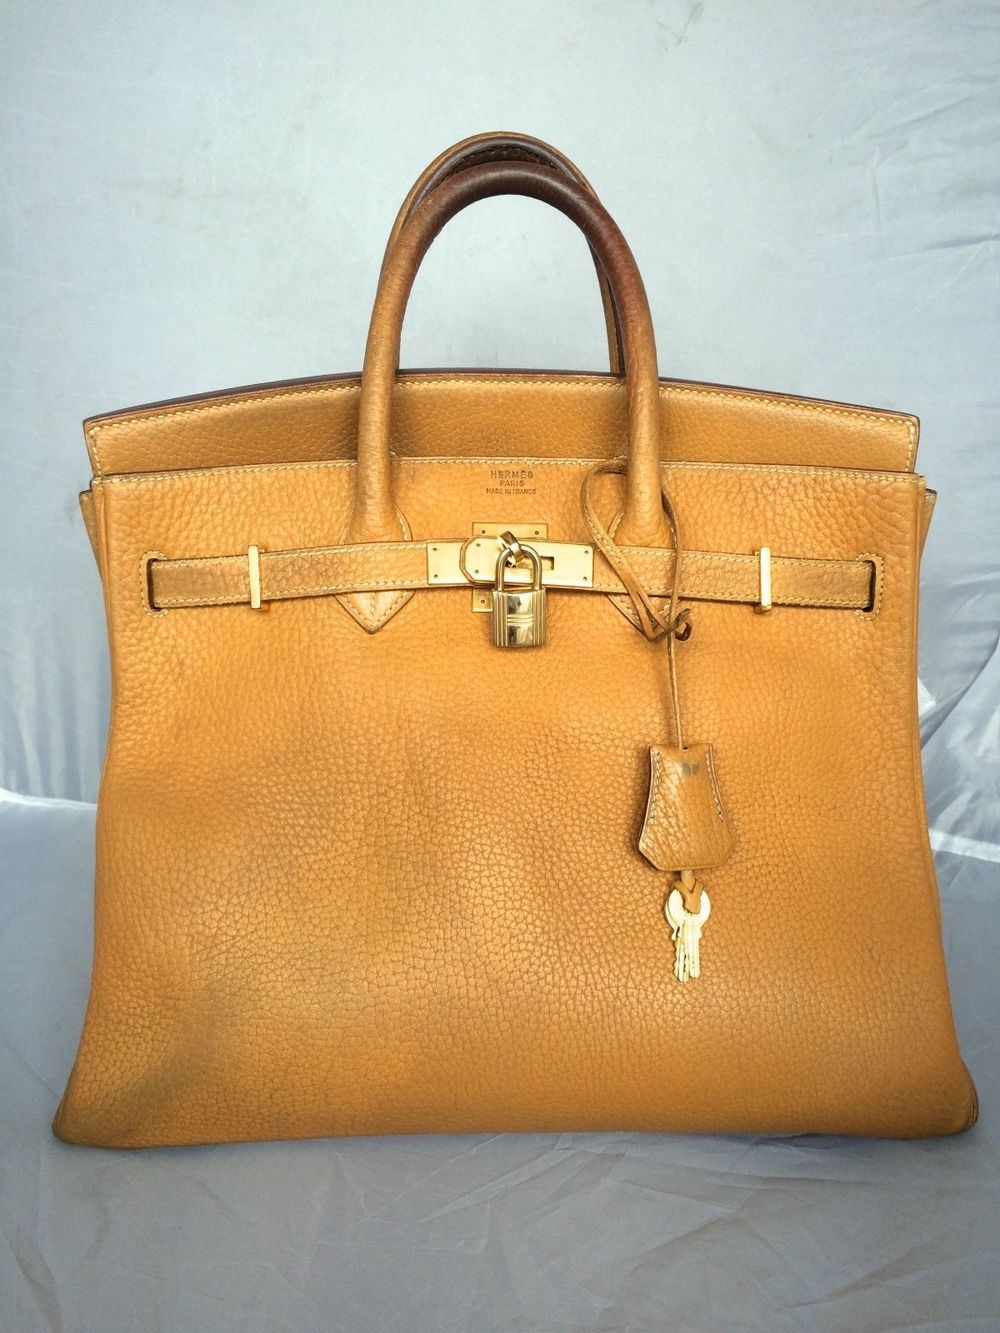 Discolorations in the handles of a Hermes bag.